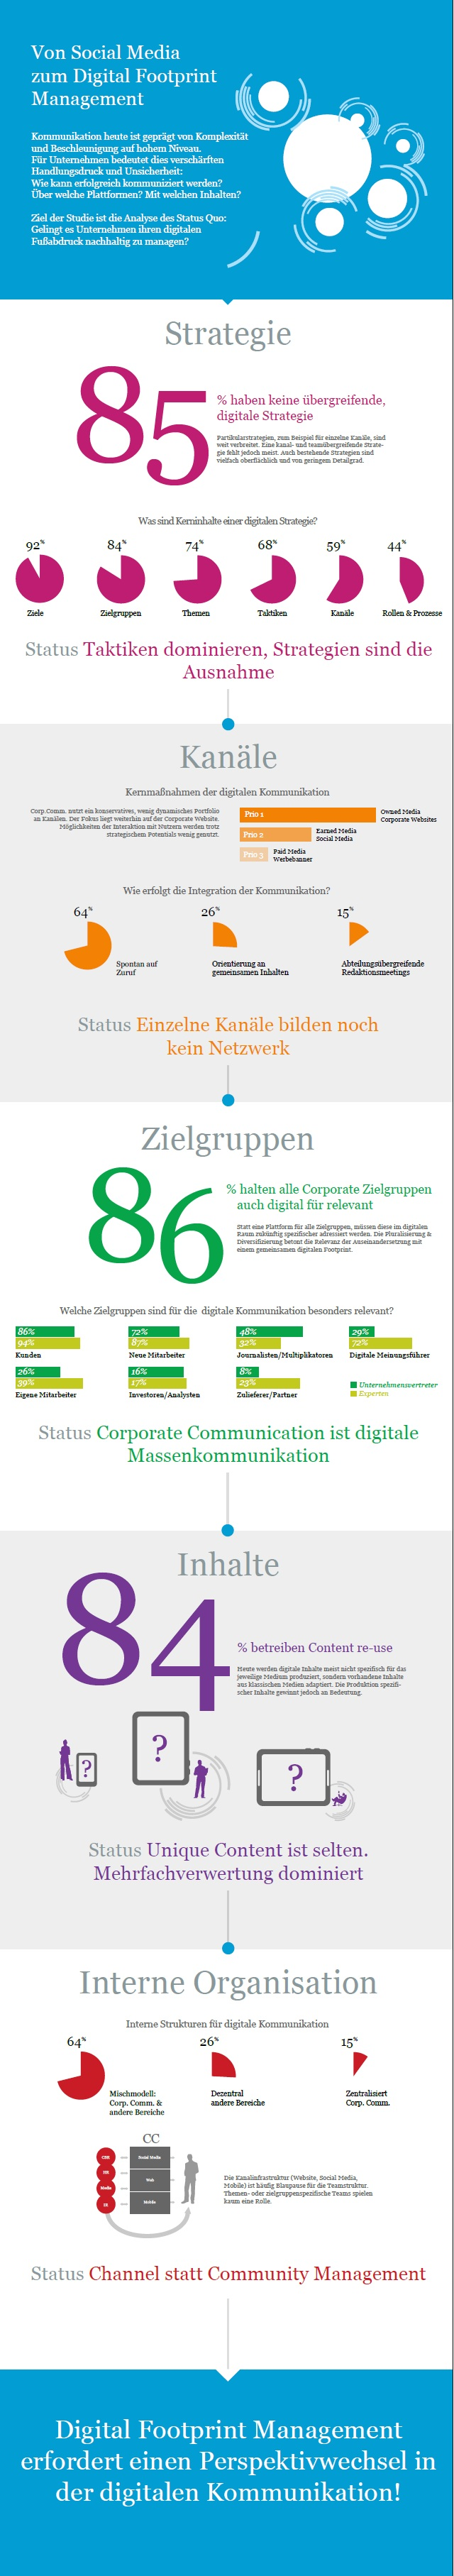 Uni St. Gallen, Virtual Identity AG, Infografik, Social Media, Digital Footprint Management